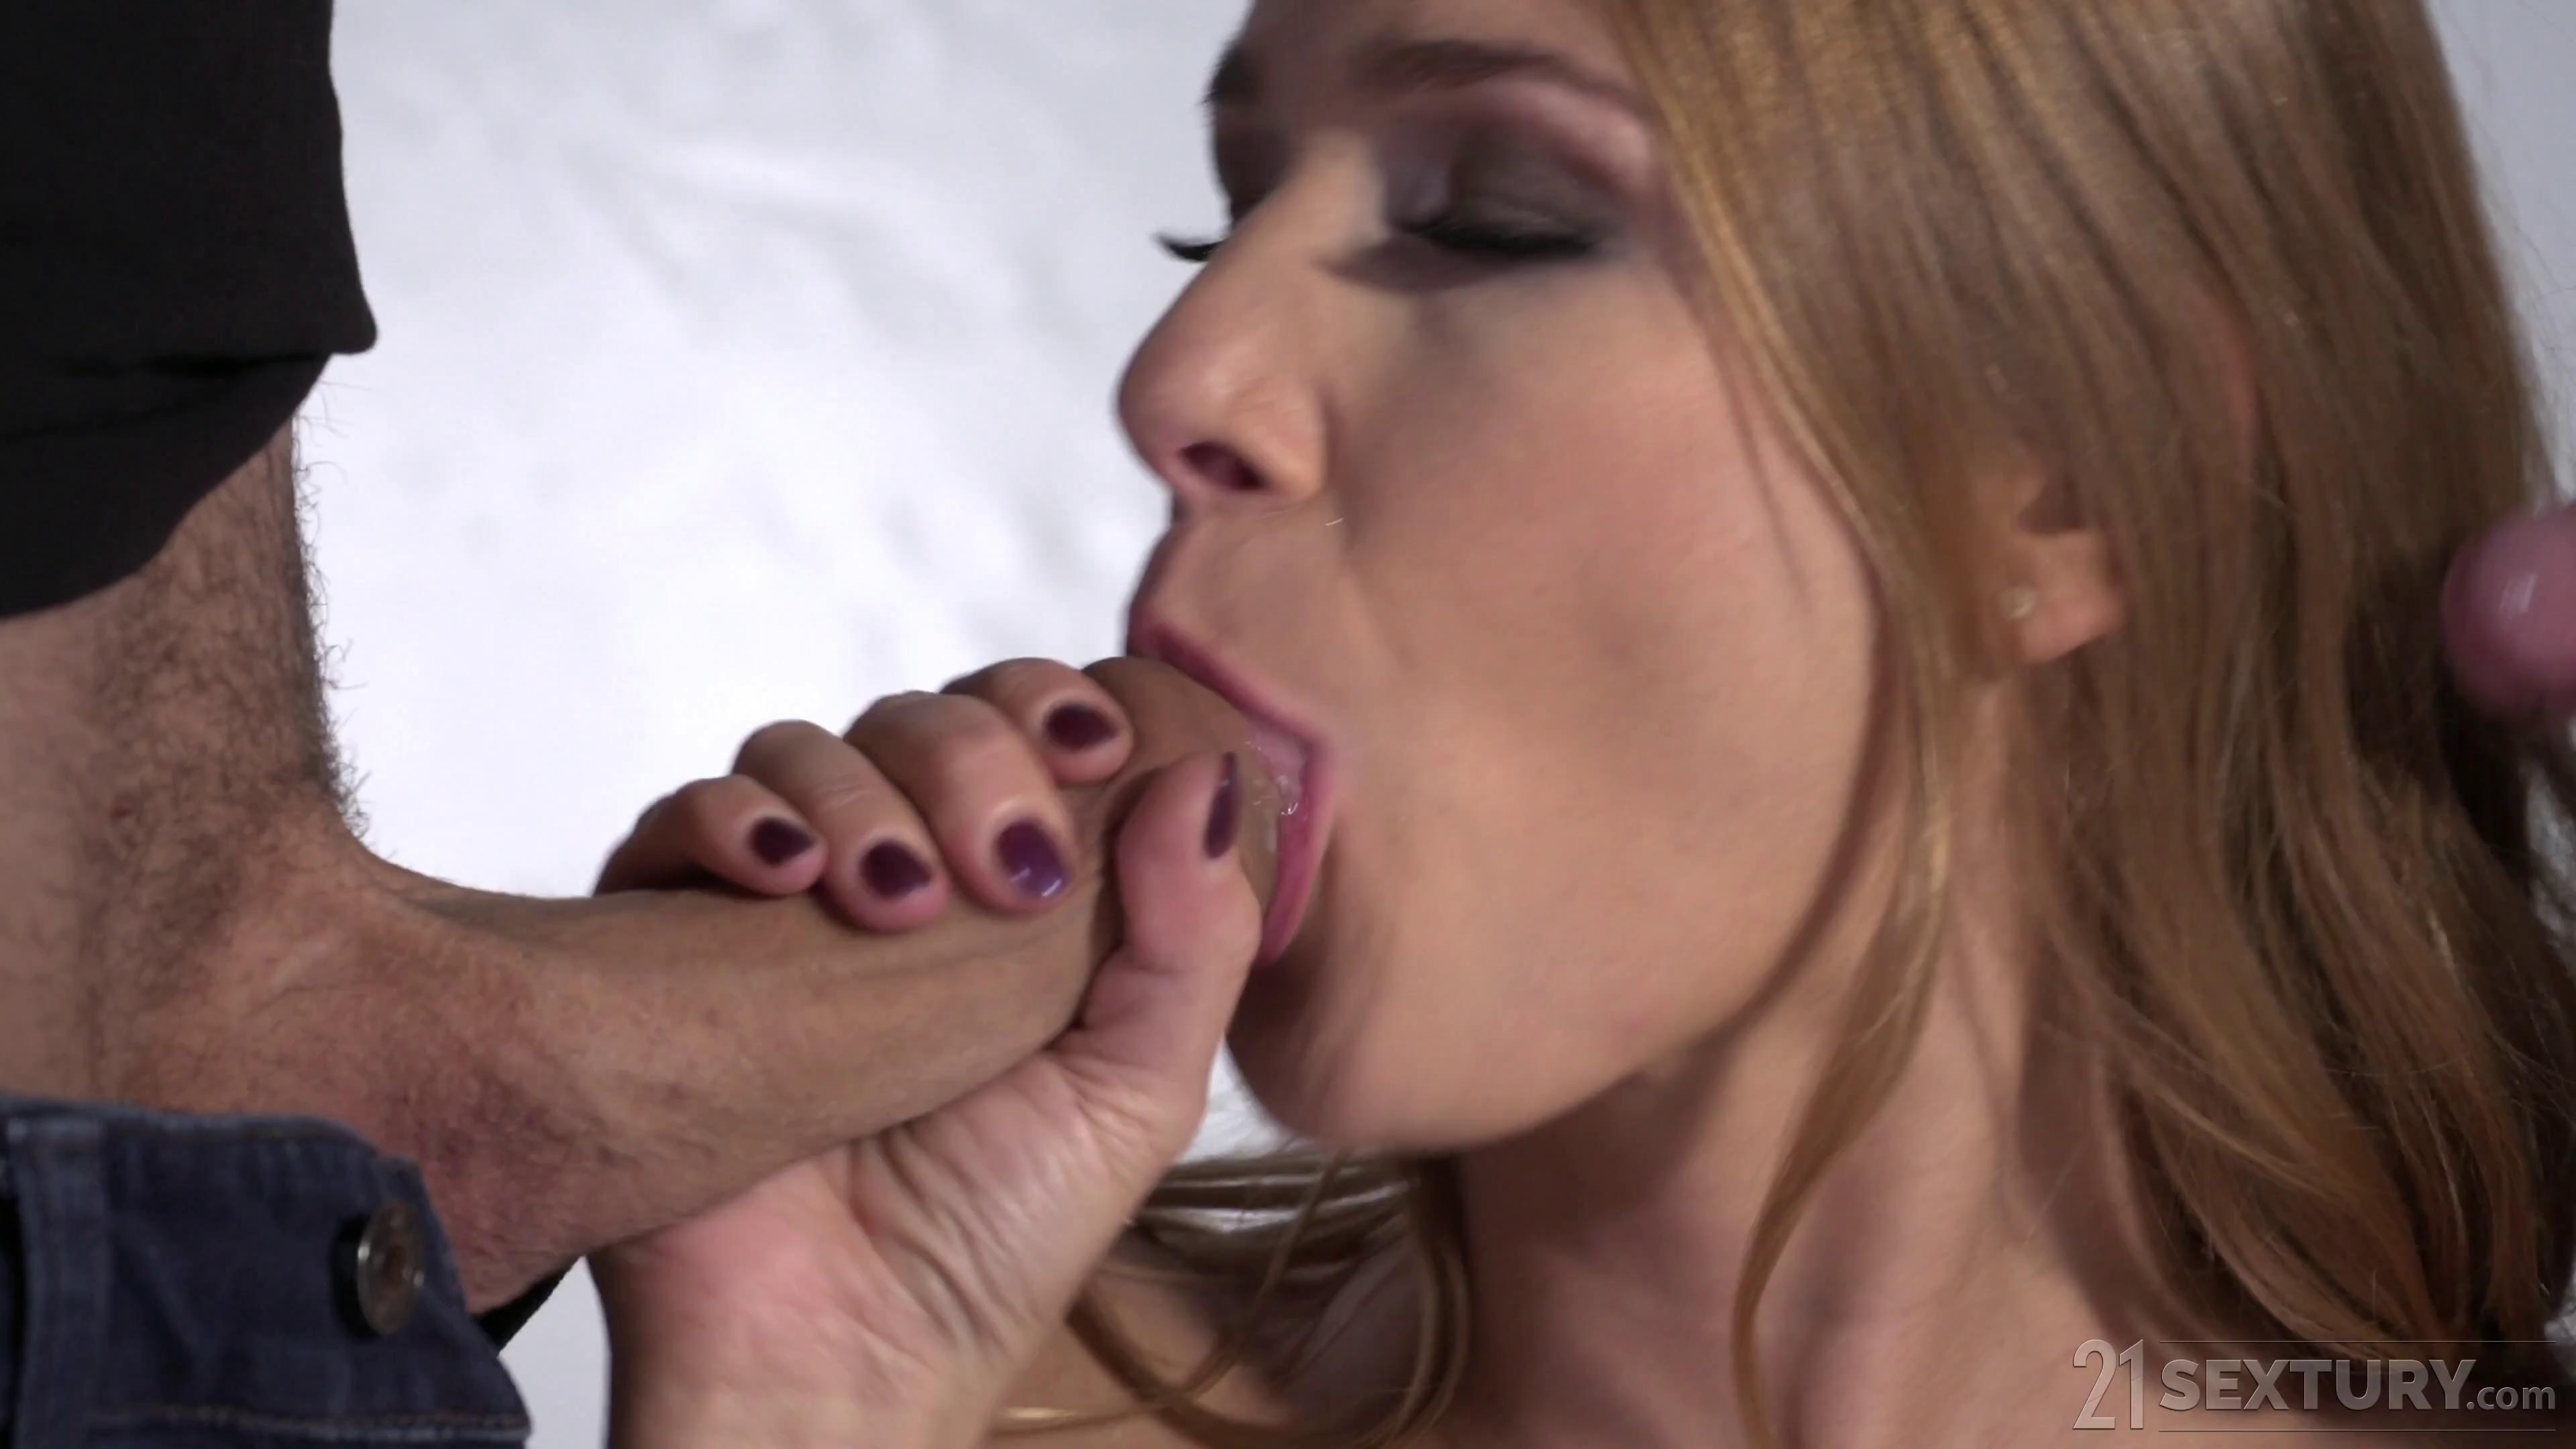 Alexis Crystal Threesome Modeling